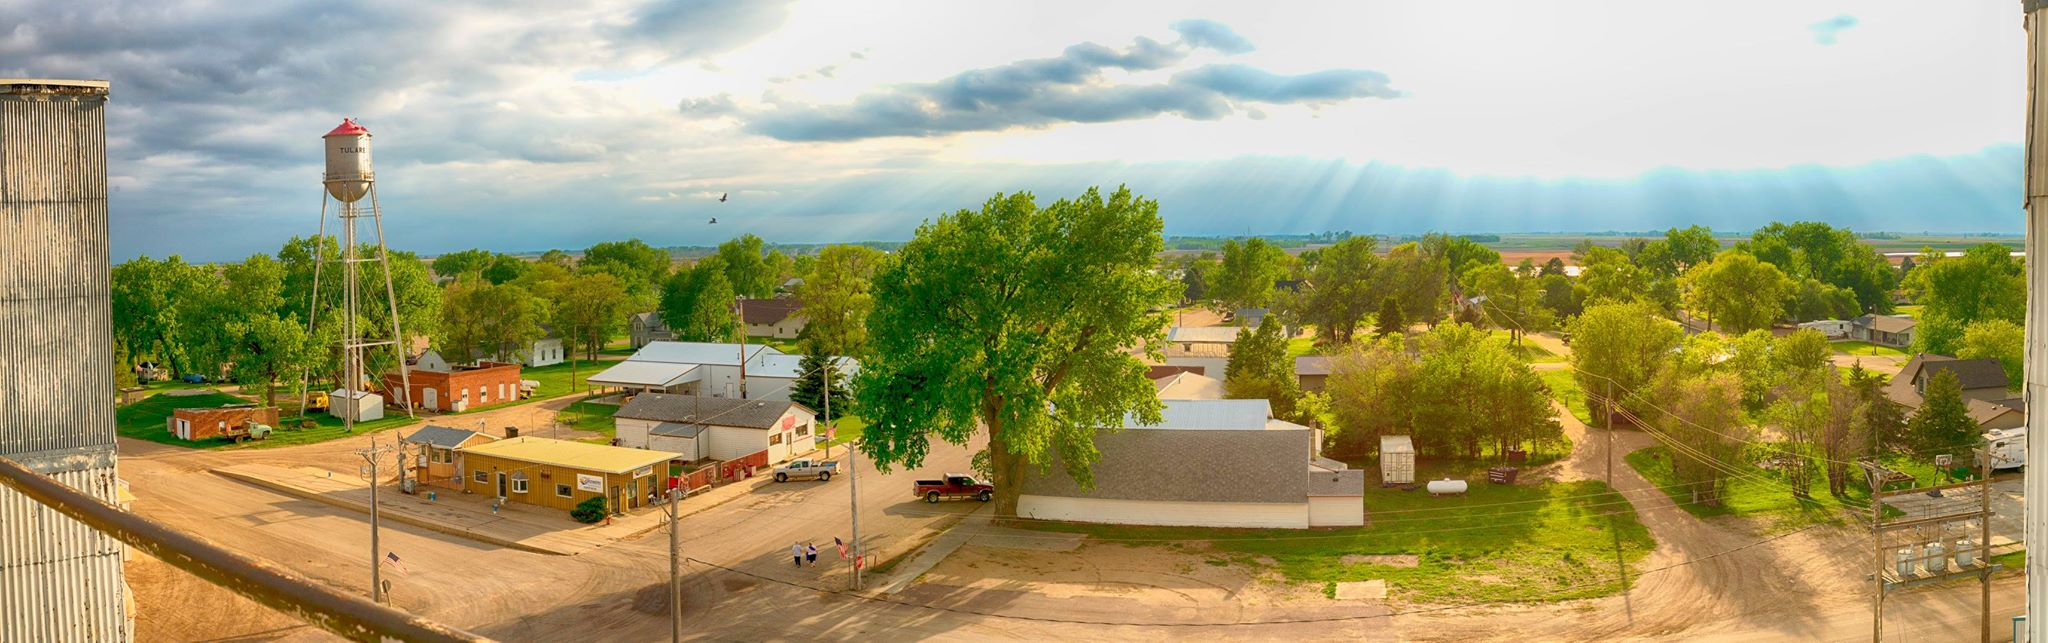 The entire town of Tulare, SD all in one frame. My hometown and a little chunk of Midwest heaven.